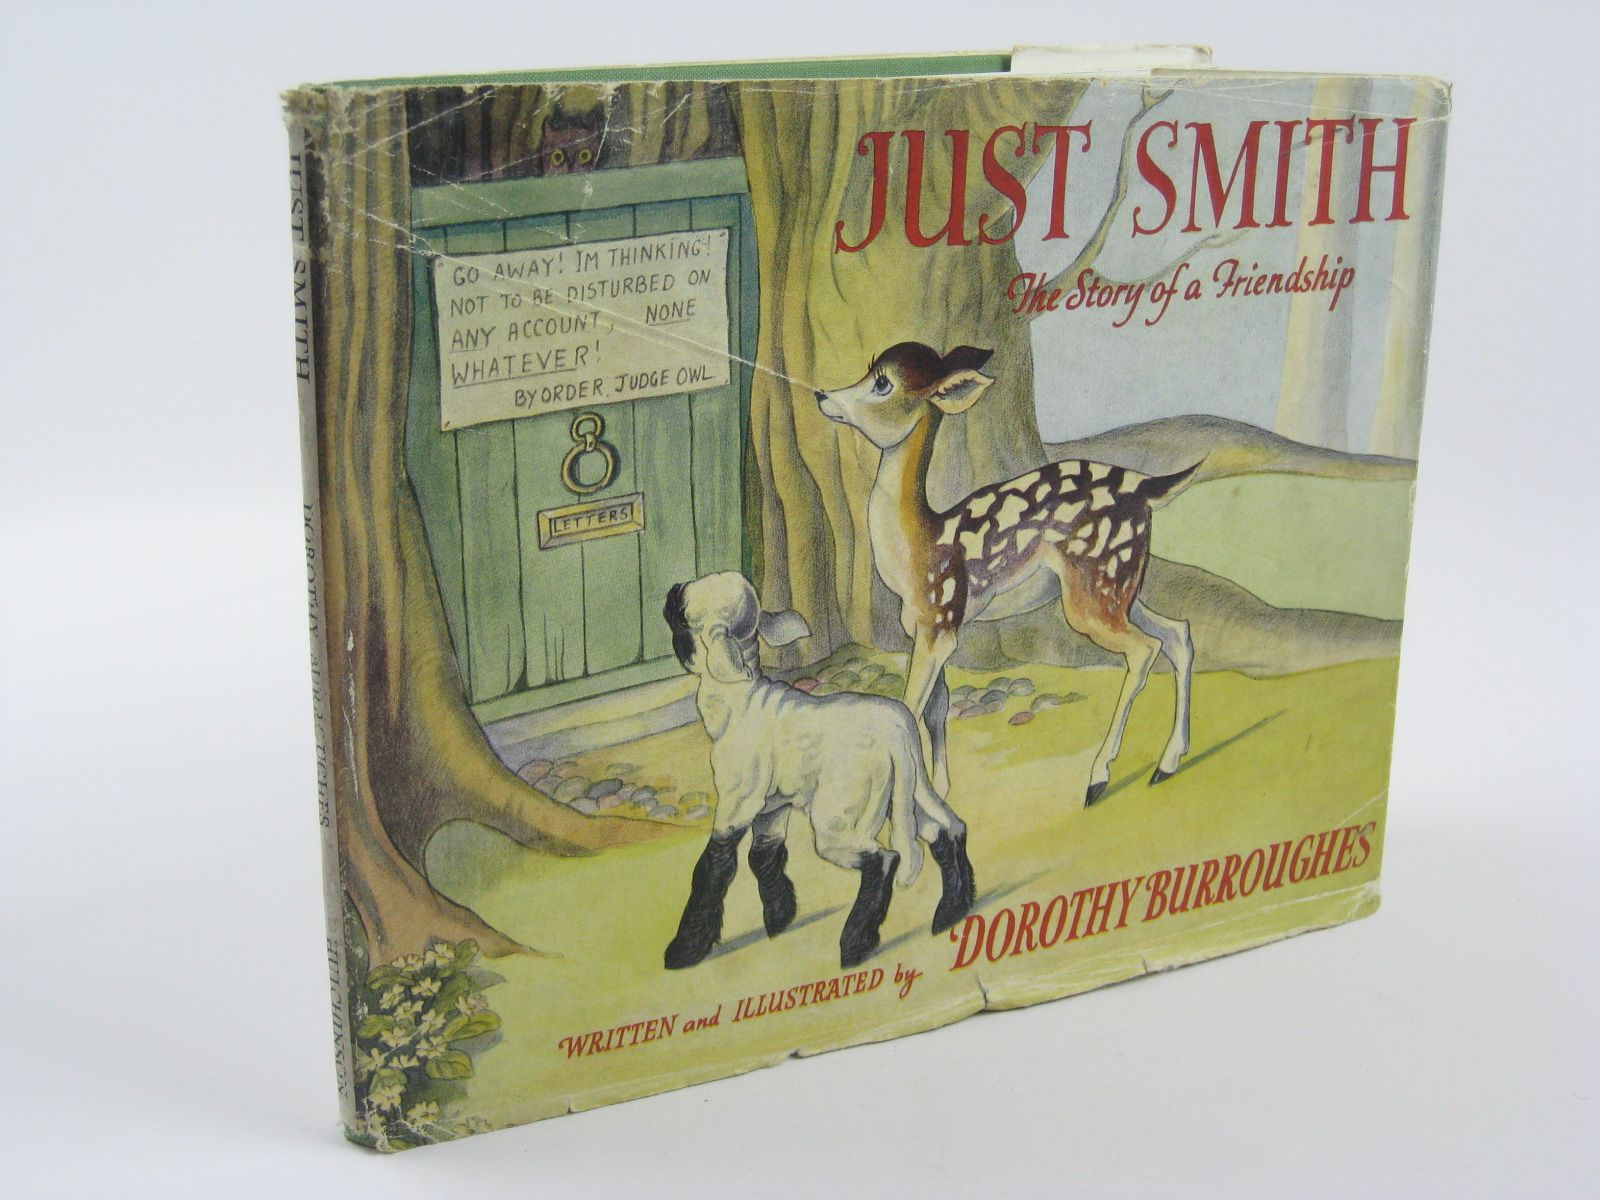 Photo of JUST SMITH written by Burroughes, Dorothy illustrated by Burroughes, Dorothy published by Hutchinson & Co. Ltd (STOCK CODE: 1310220)  for sale by Stella & Rose's Books